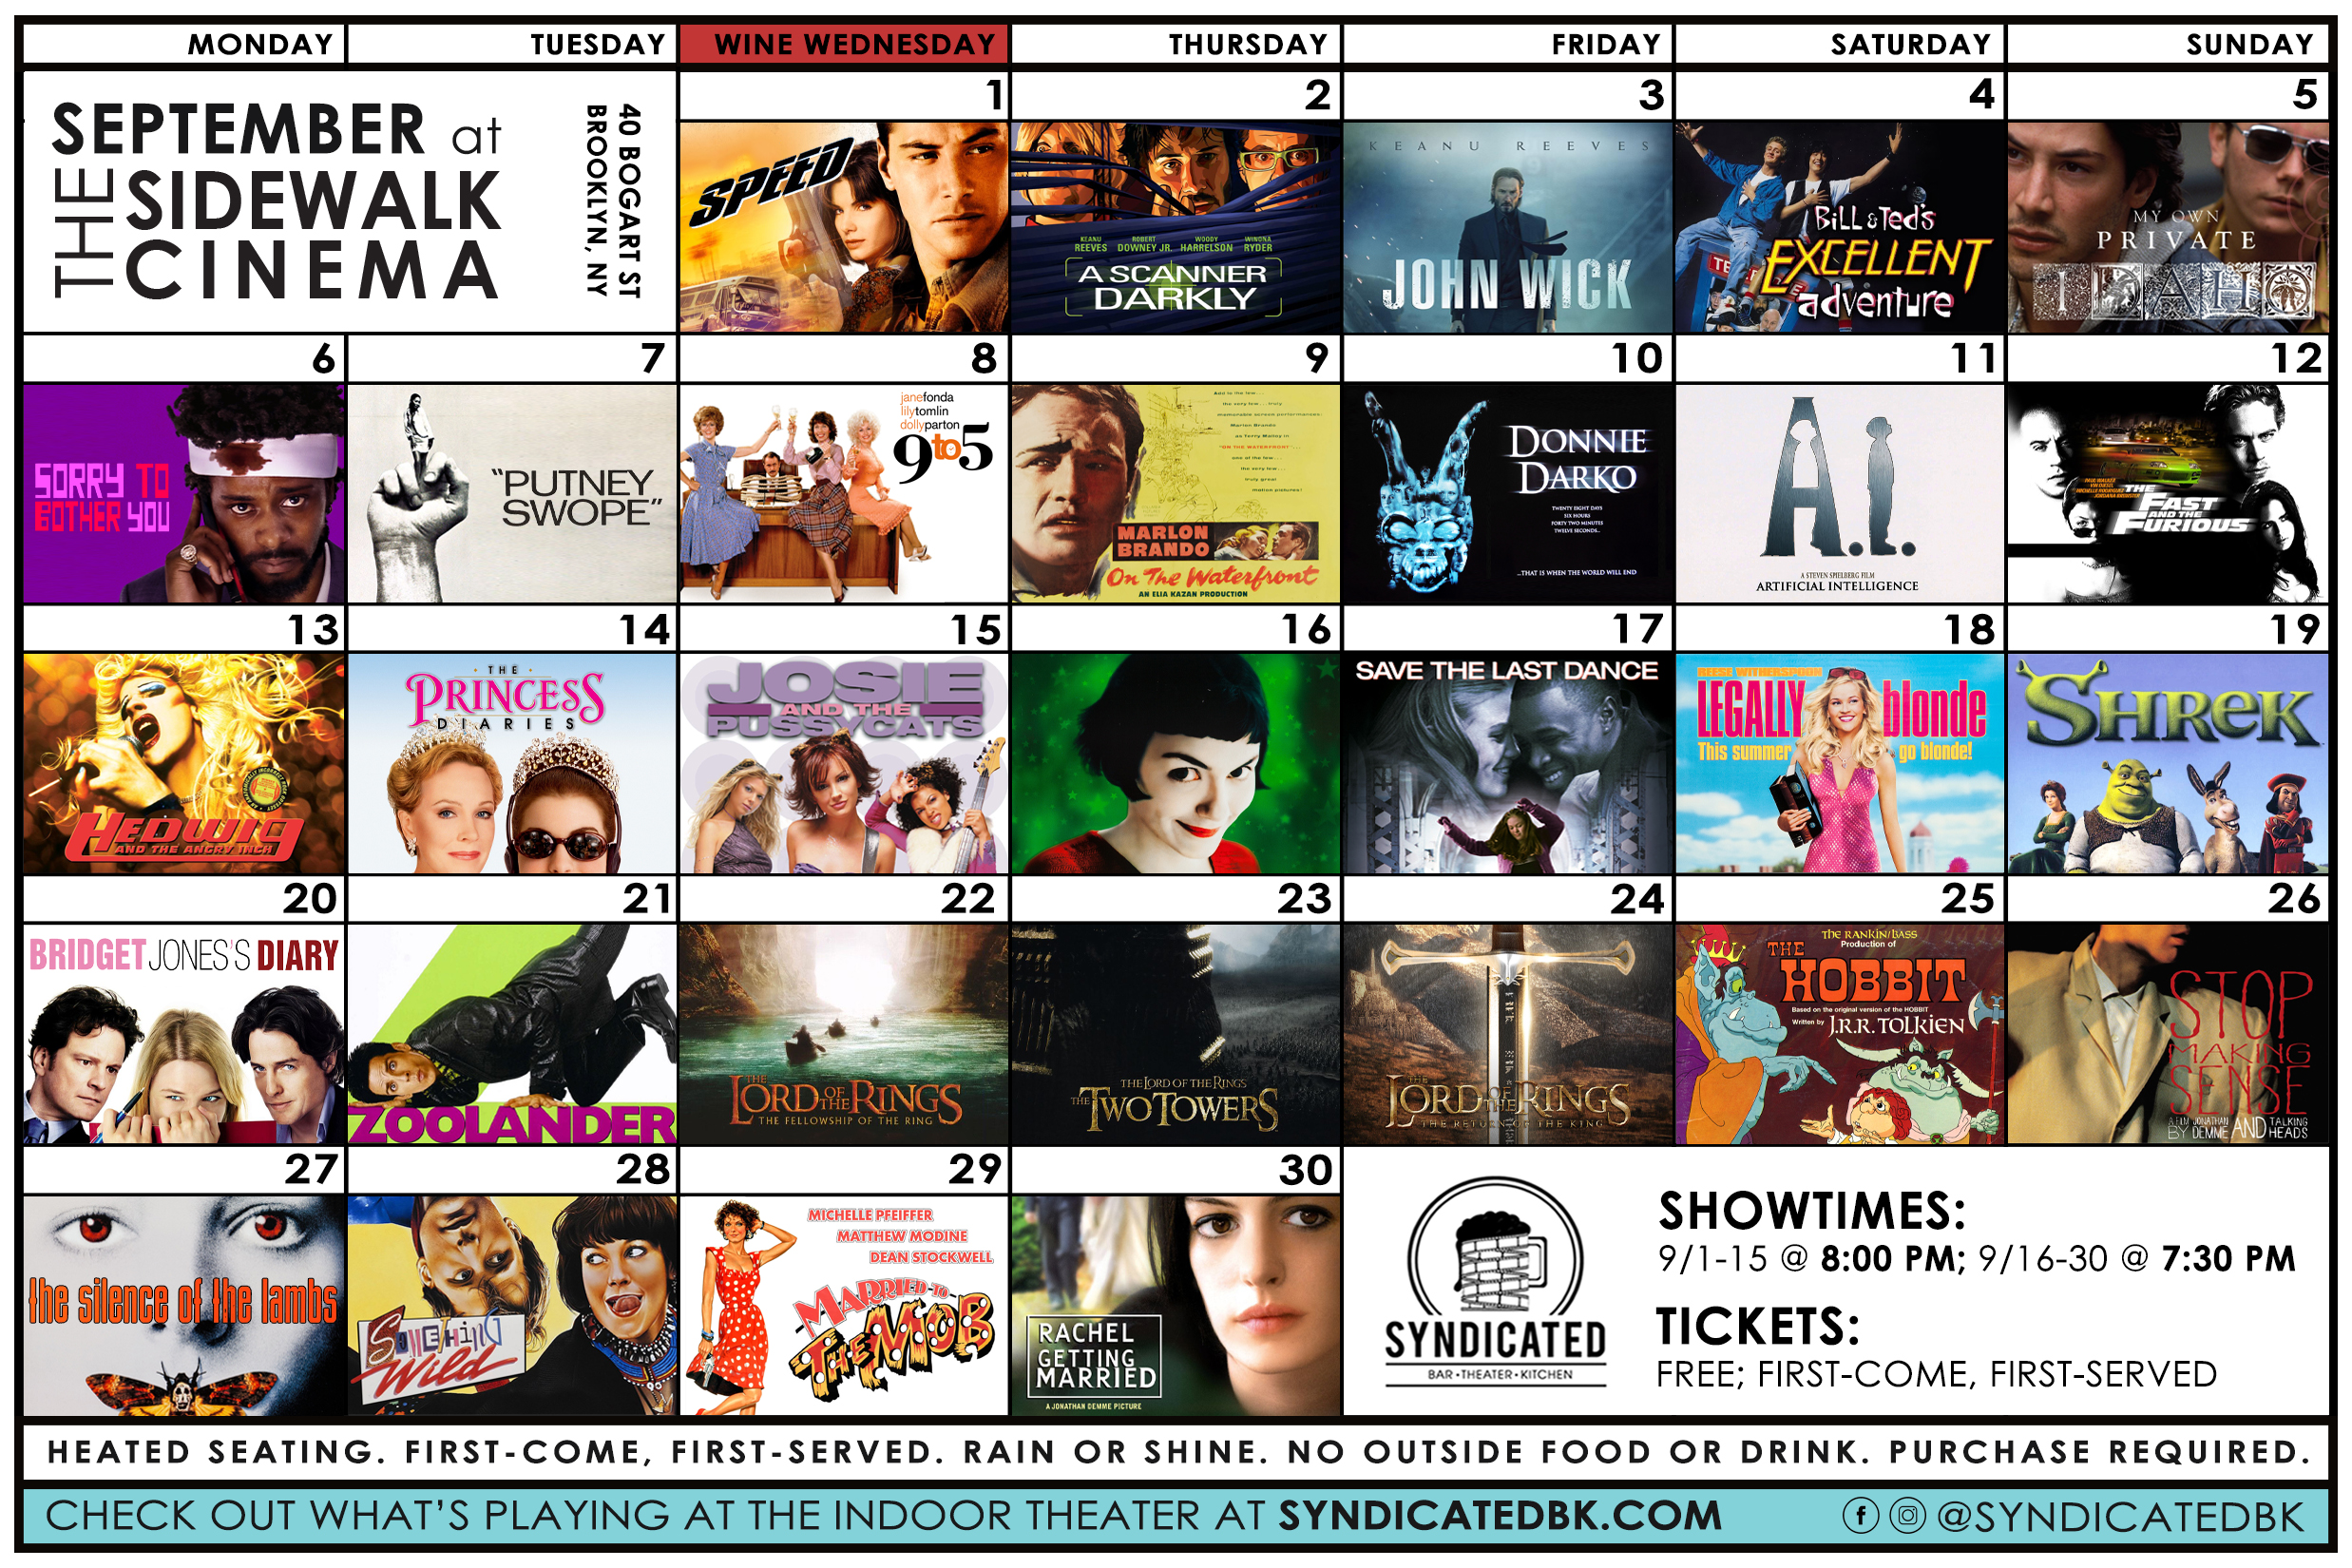 September Sidewalk Cinema Schedule   September 1st – Speed   2nd – A Scanner Darkly   3rd – John Wick   4th – Bill and Ted's Excellent Adventure   5th – My Own Private Idaho   6th – Sorry to Bother You   7th – Putney Swope   8th – 9 to 5   9th – On the Waterfront   10th – Donnie Darko   11th – A.I. Artificial Intelligence   12th – The Fast and the Furious   13th – Hedwig and the Angry Inch   14th – The Princess Diaries   15th – Josie and the Pussycats   16th – Undisclosed French Film   17th – Save the Last Dance   18th – Legally Blonde   19th – Shrek   20th – Bridget Jones's Diary   21st – Zoolander   22nd – The Lord of the Rings: The Fellowship of the Ring   23rd – The Lord of the Rings: The Two Towers   24th – The Lord of the Rings: The Return of the King   25th – The Hobbit (1977)   26th – Stop Making Sense   27th – The Silence of the Lambs   28th – Something Wild   29th – Married to the Mob   30th – Rachel Getting Married